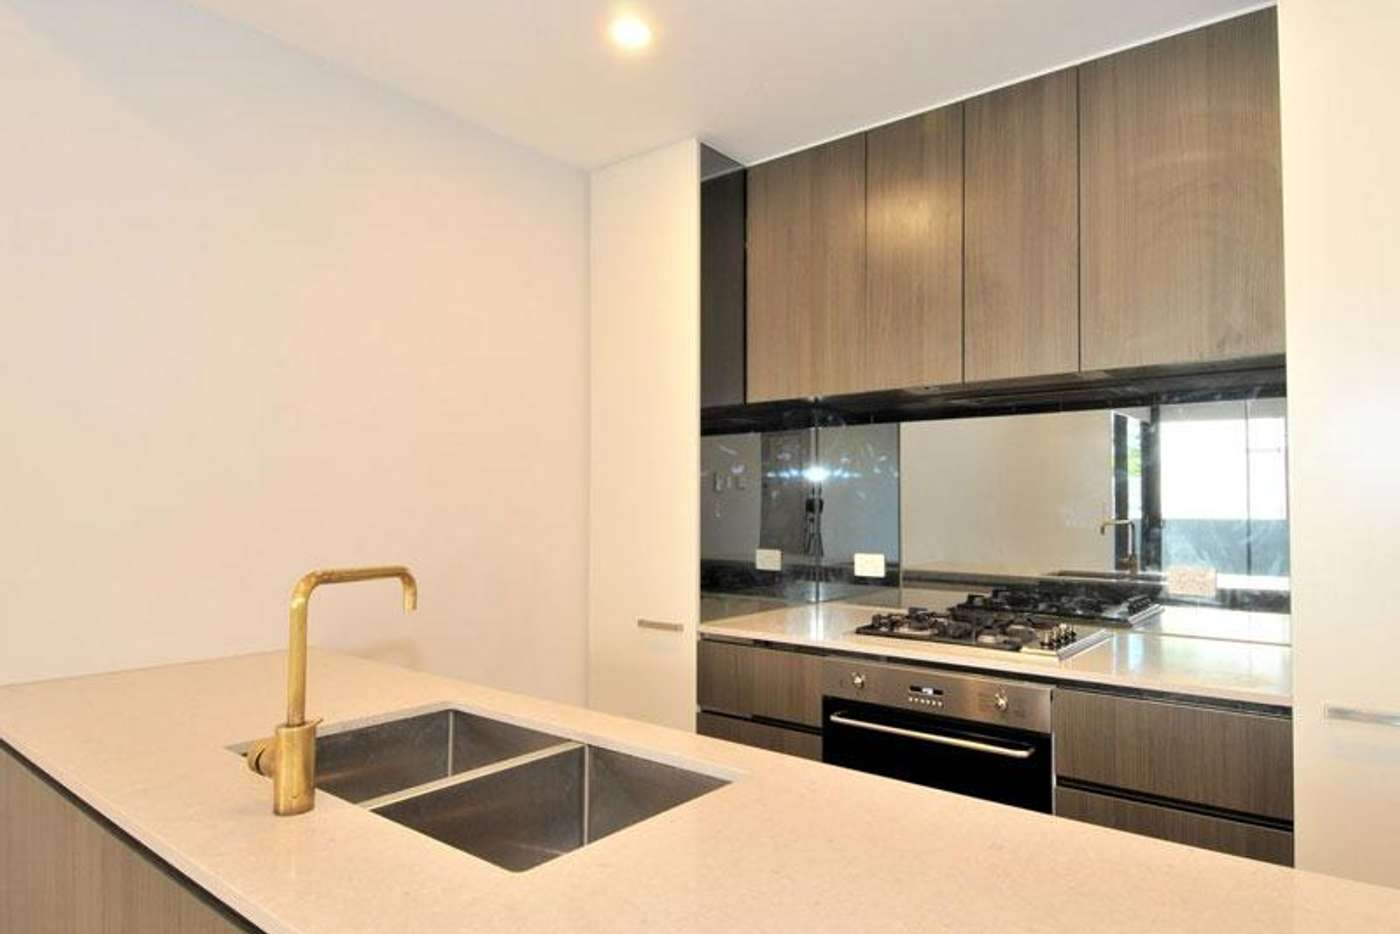 Main view of Homely apartment listing, 206/544 Pacific Highway, Chatswood NSW 2067